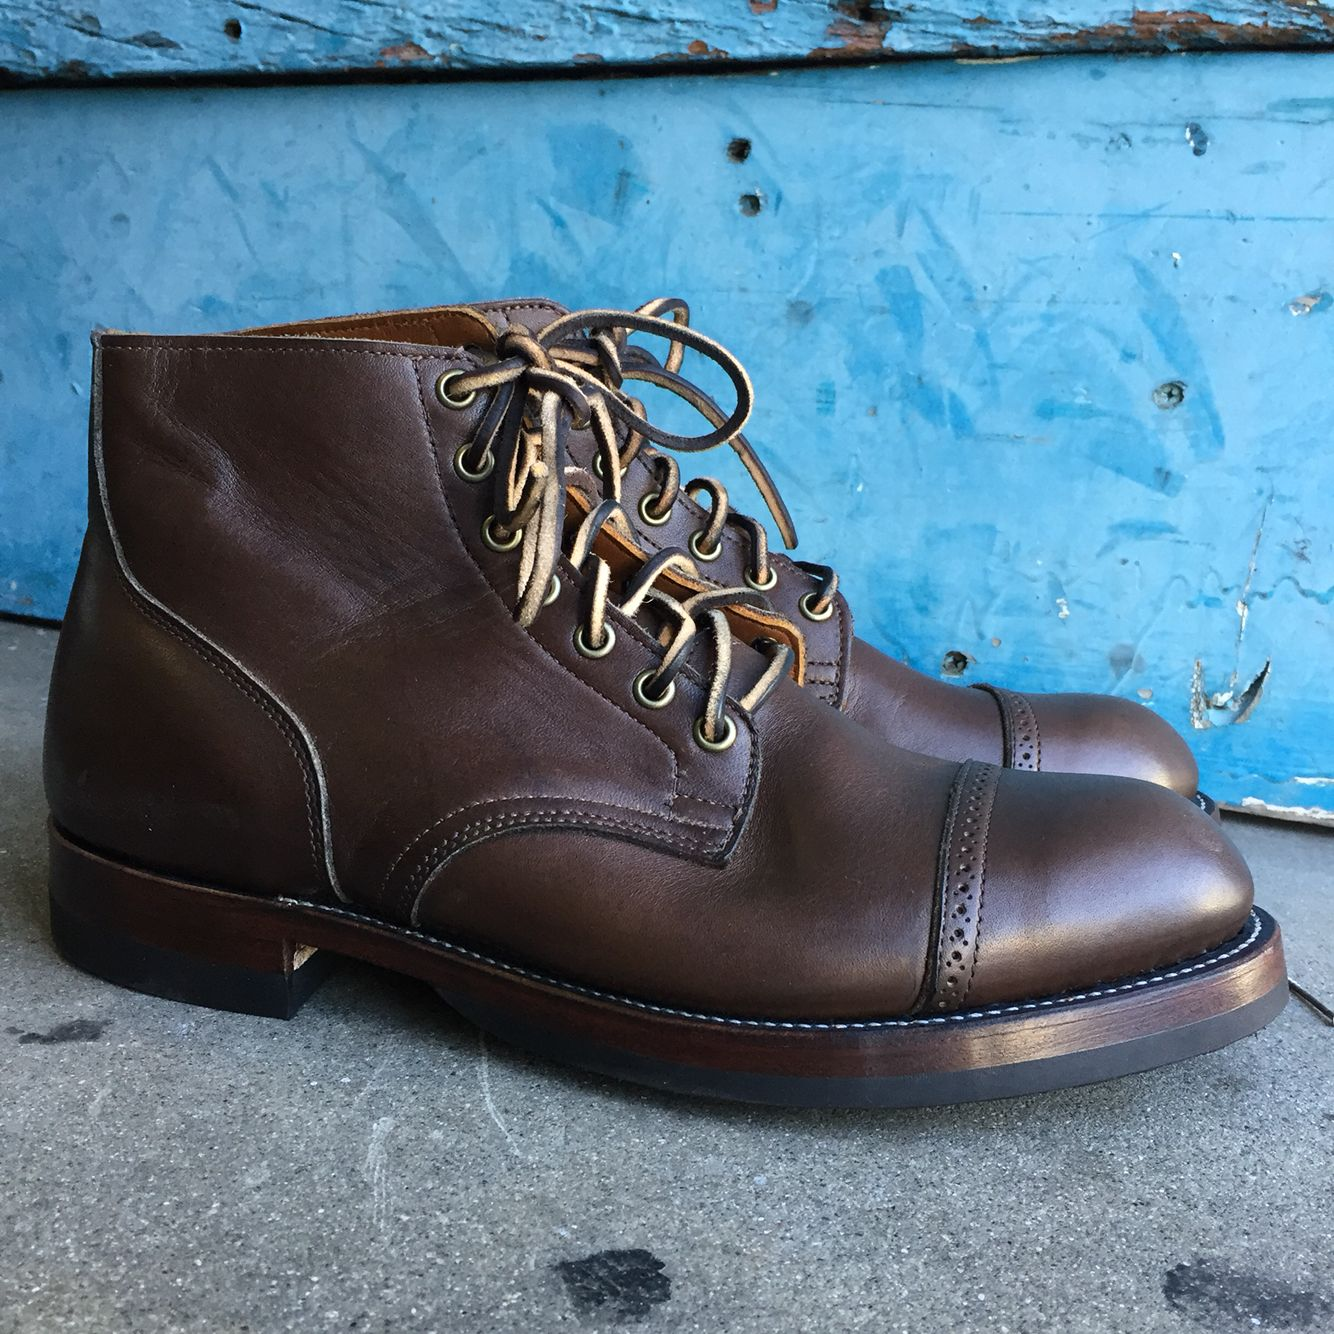 72fbffe2f9b5 Viberg Service boots. I relasted them on my 309 shoelast and converted them  to a handwelted construction. Everything was replaced except the upper.